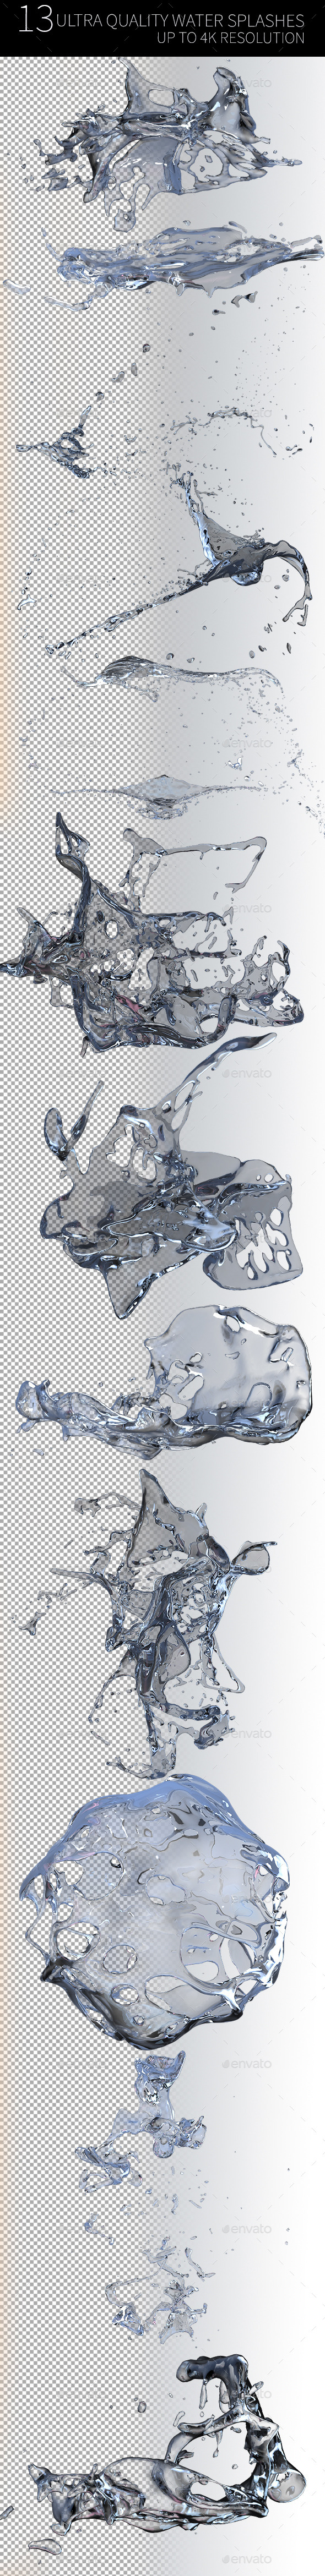 Ultra Quality Water Splash - Abstract 3D Renders